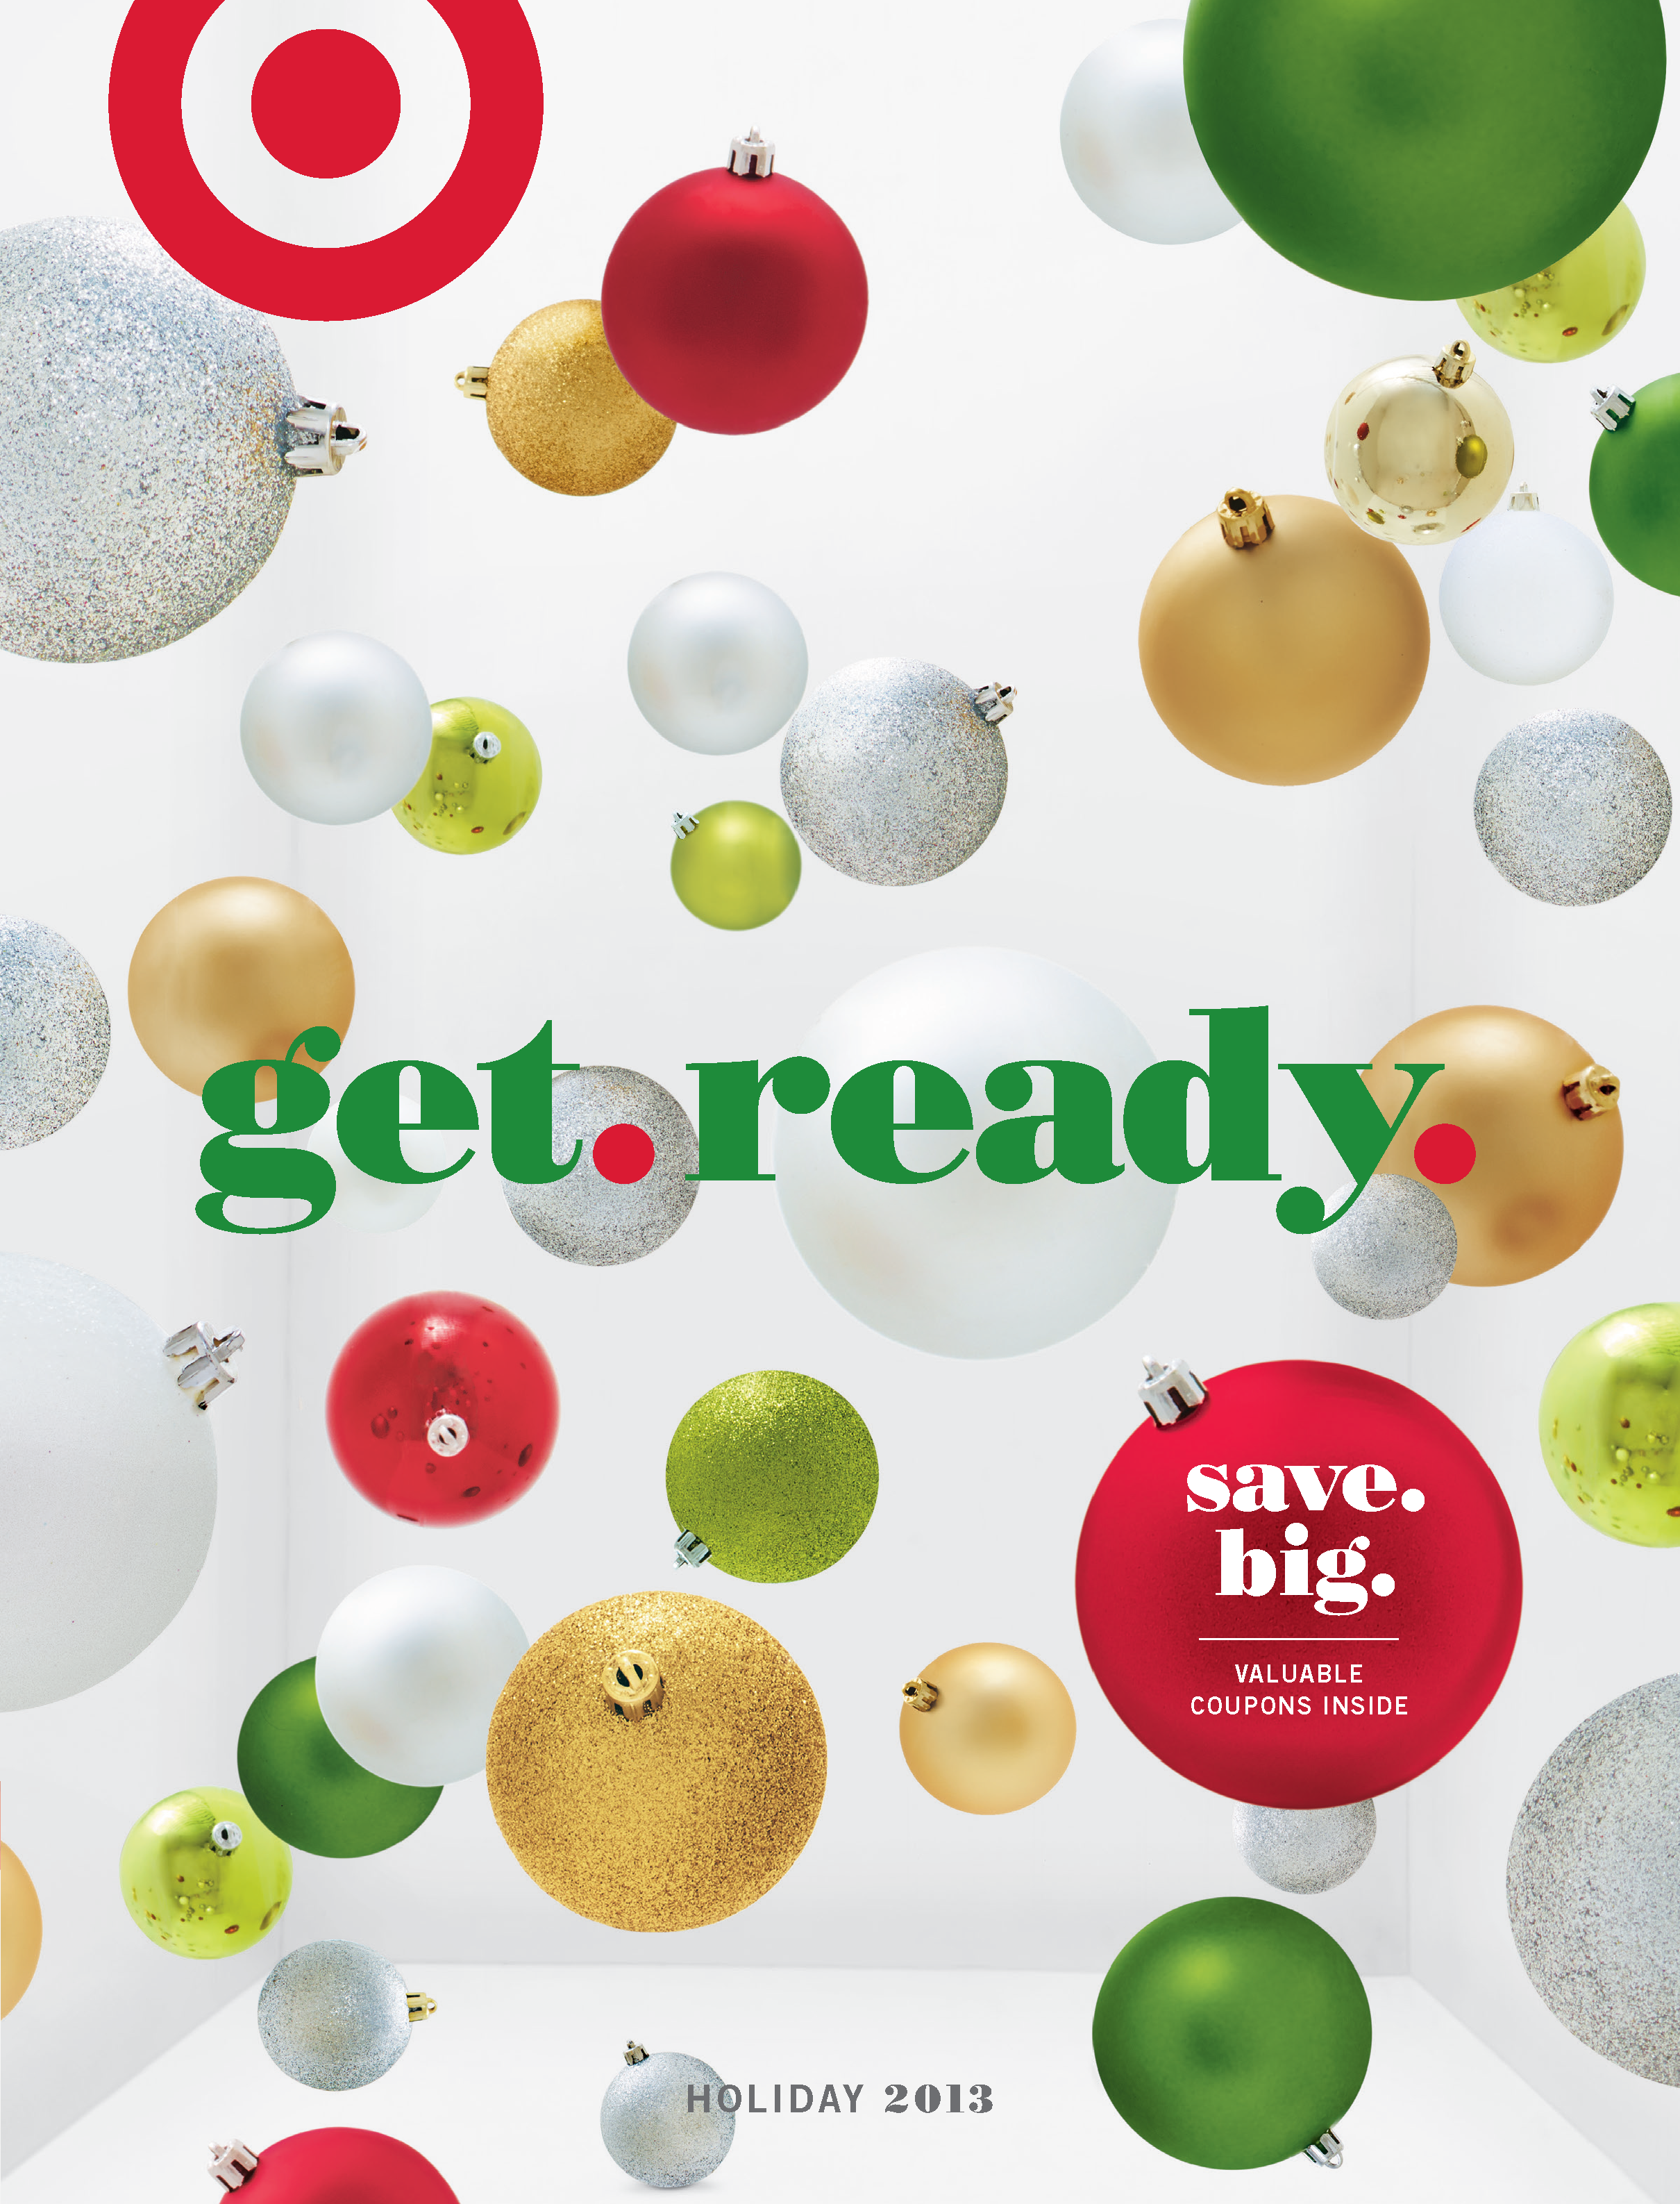 Target Unveils Holiday 2013 Initiatives